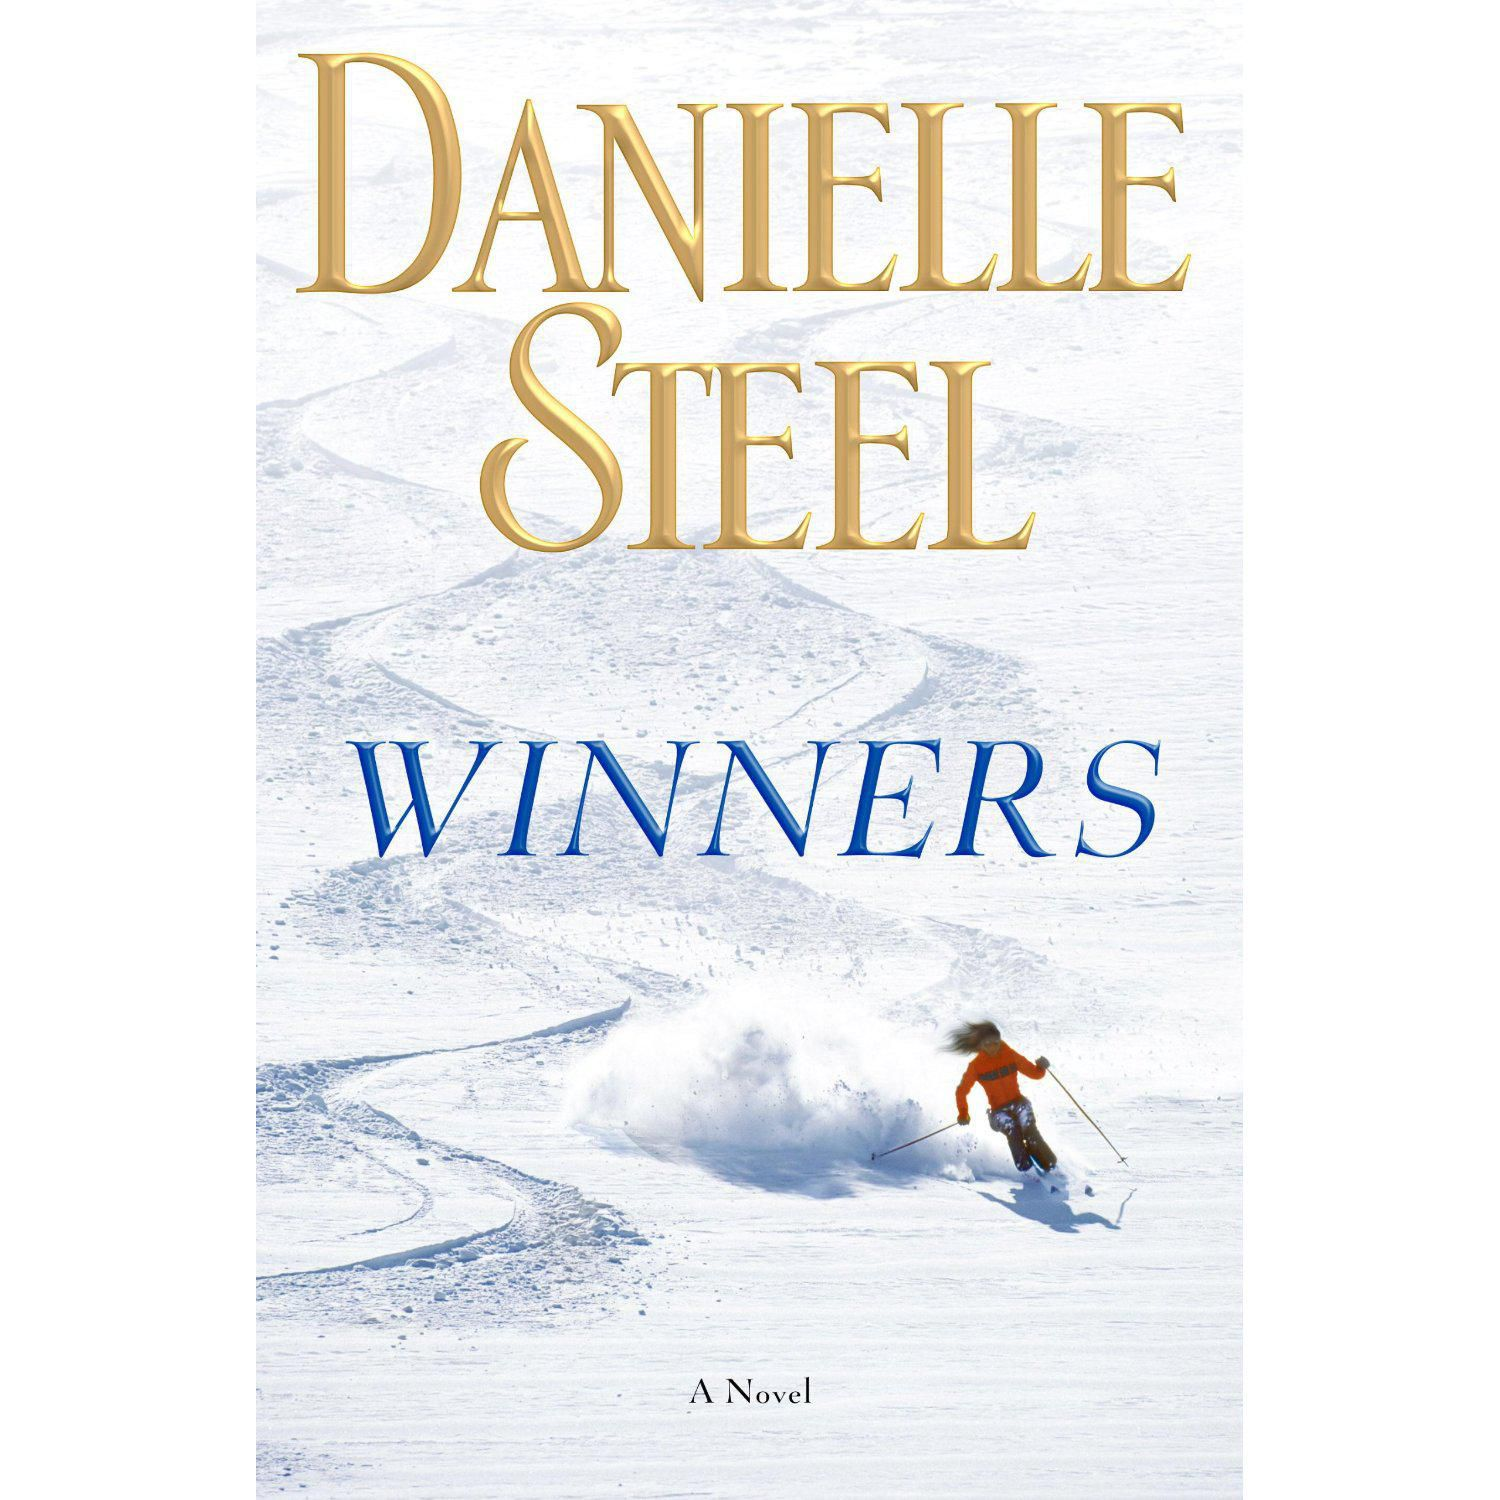 The wedding by danielle steel - Exiting New Releases To Devour By Danielle Steel